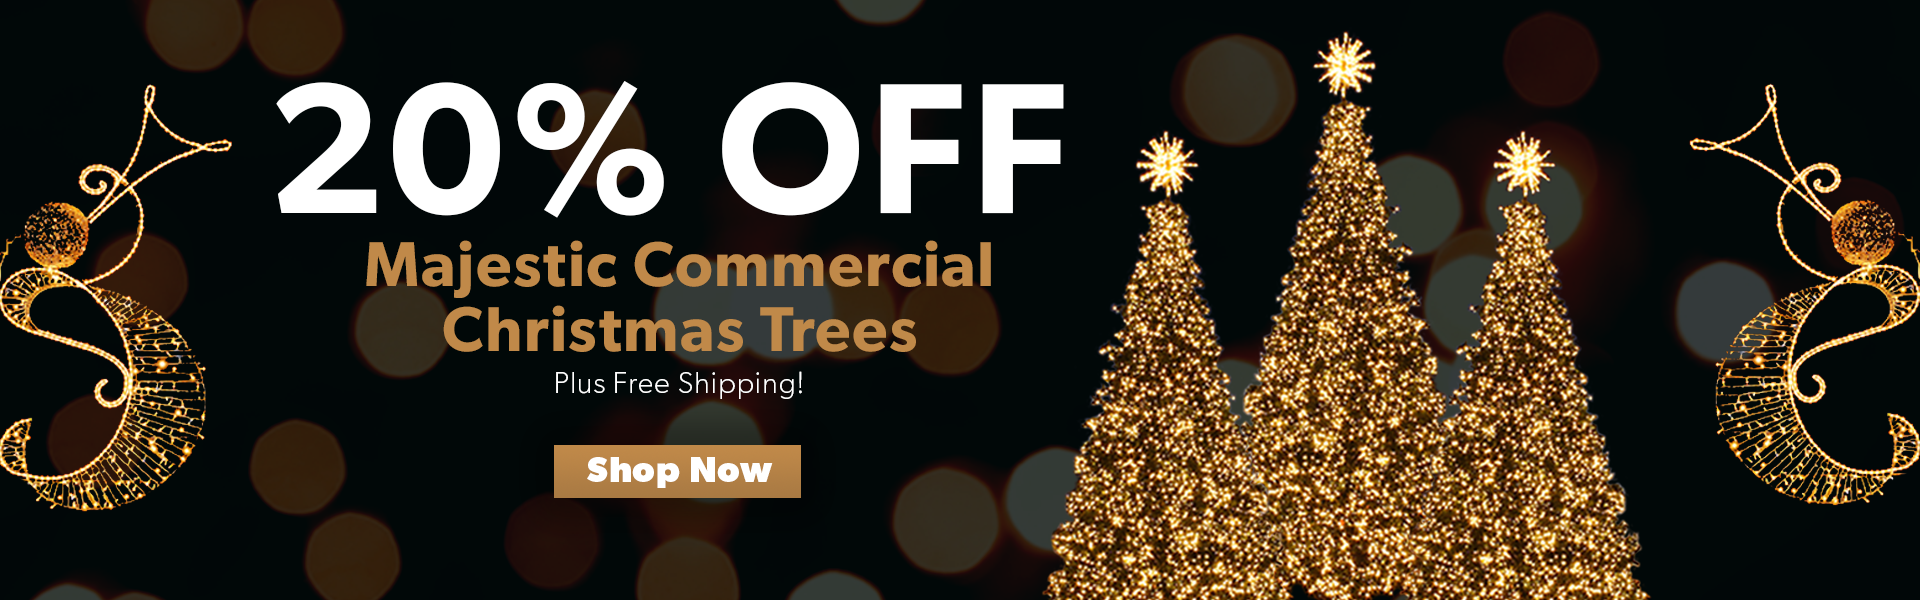 20% Off Commercial Christmas Trees Plus Free Shipping